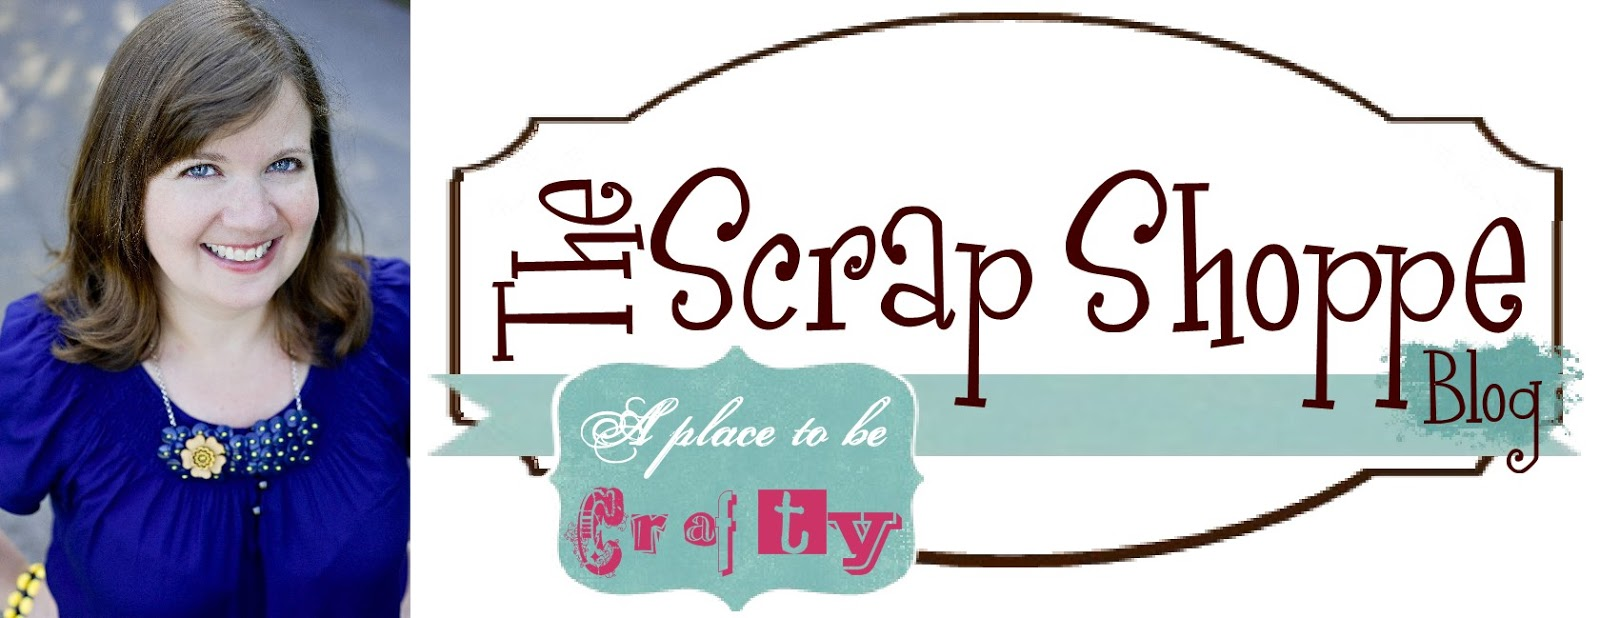 Michele from The Scrap Shoppe Blog